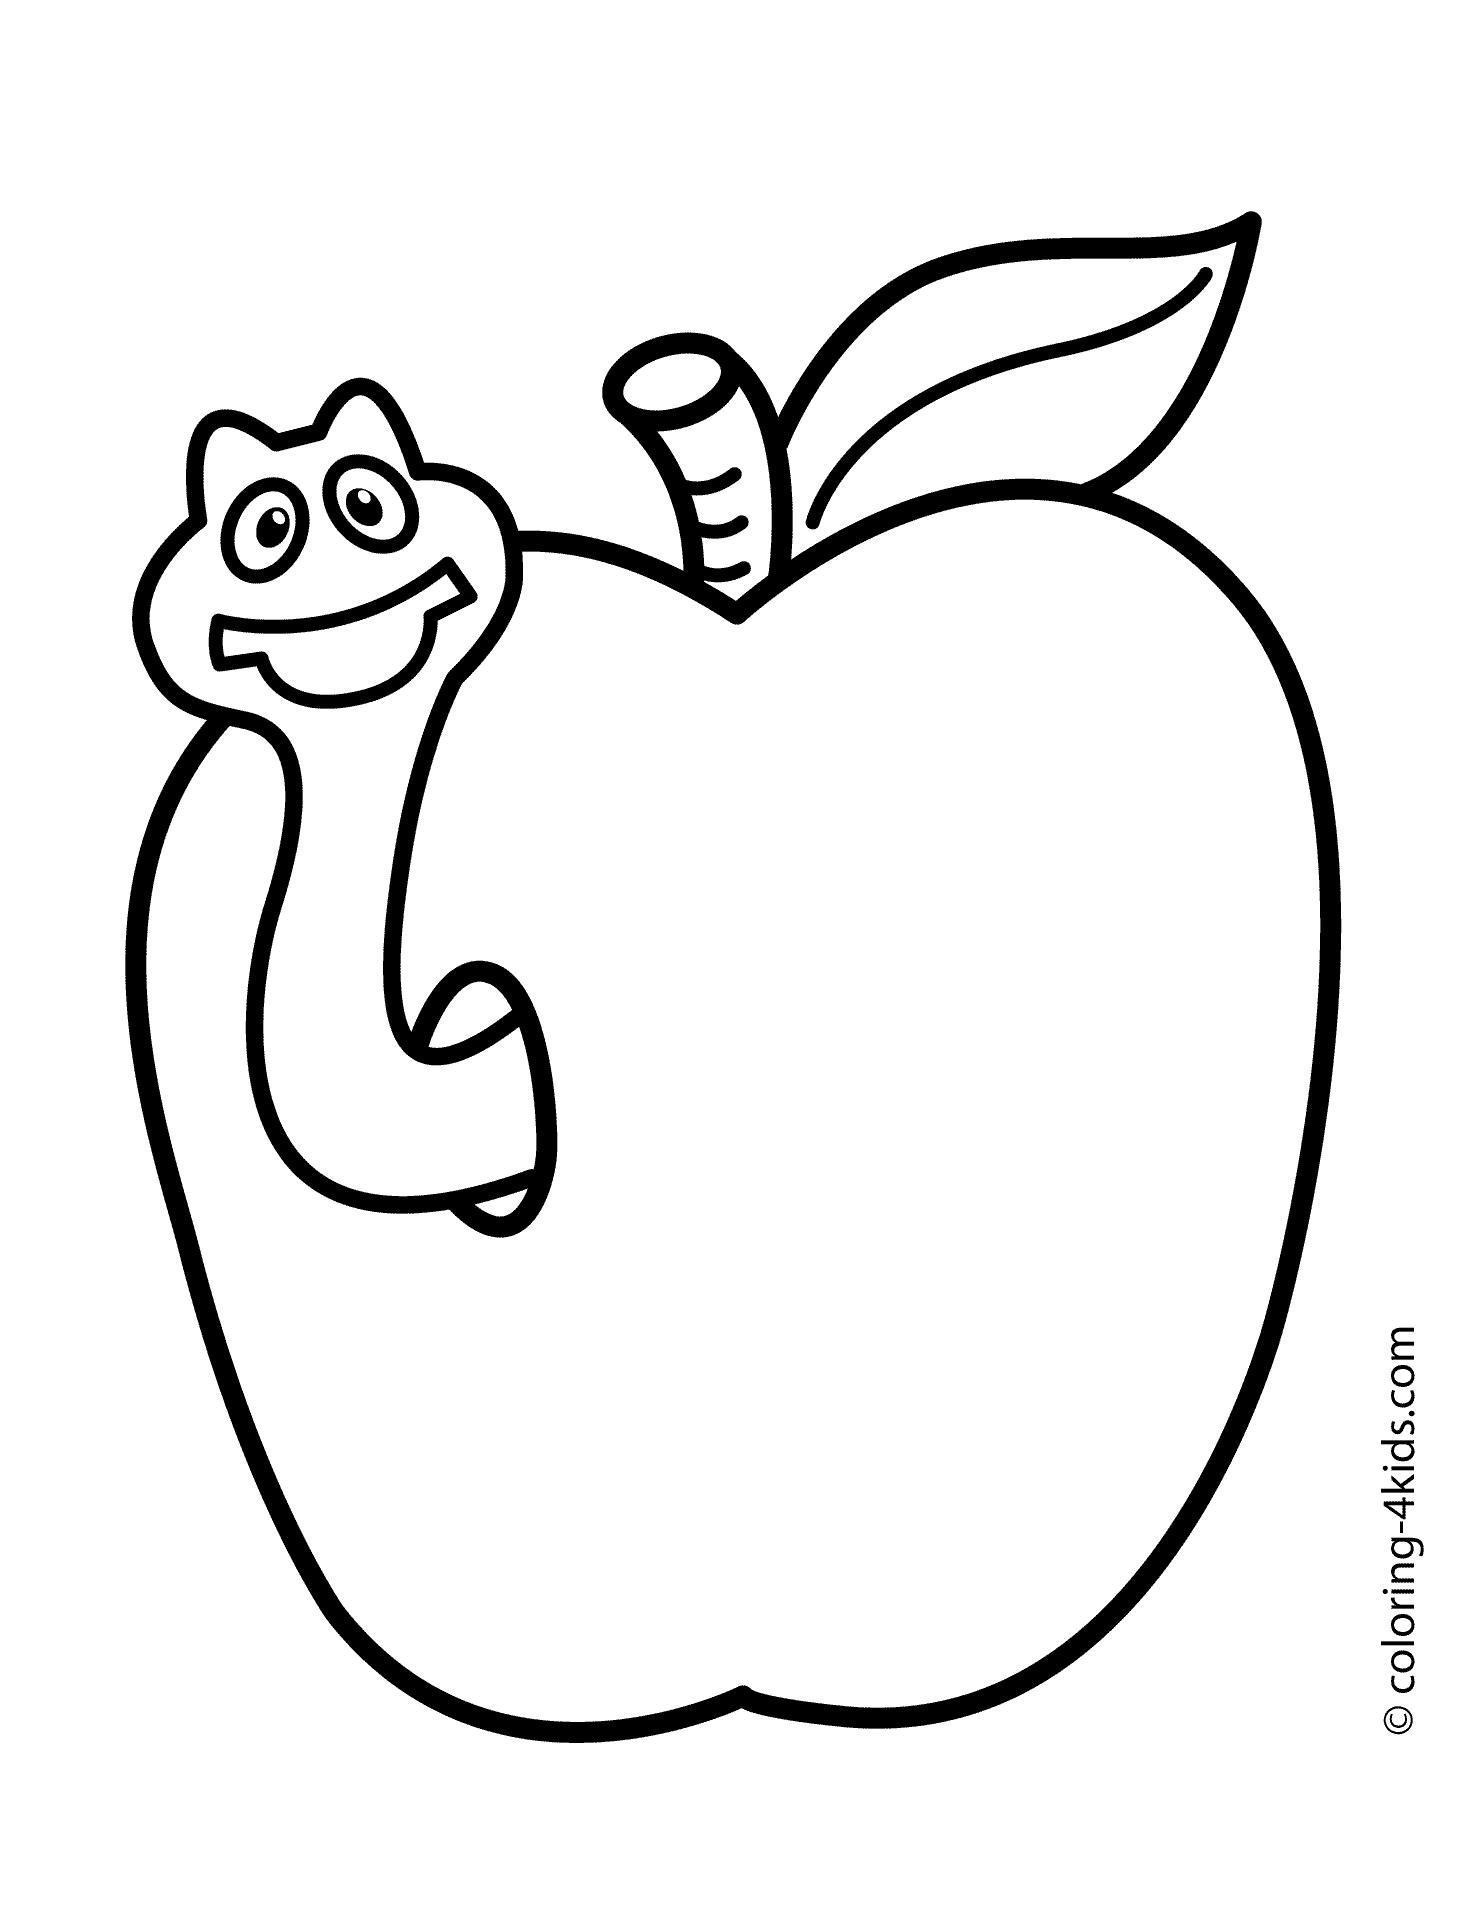 1483x1908 Coloring Pages For Year Olds Simple Colorings Coloring Pages